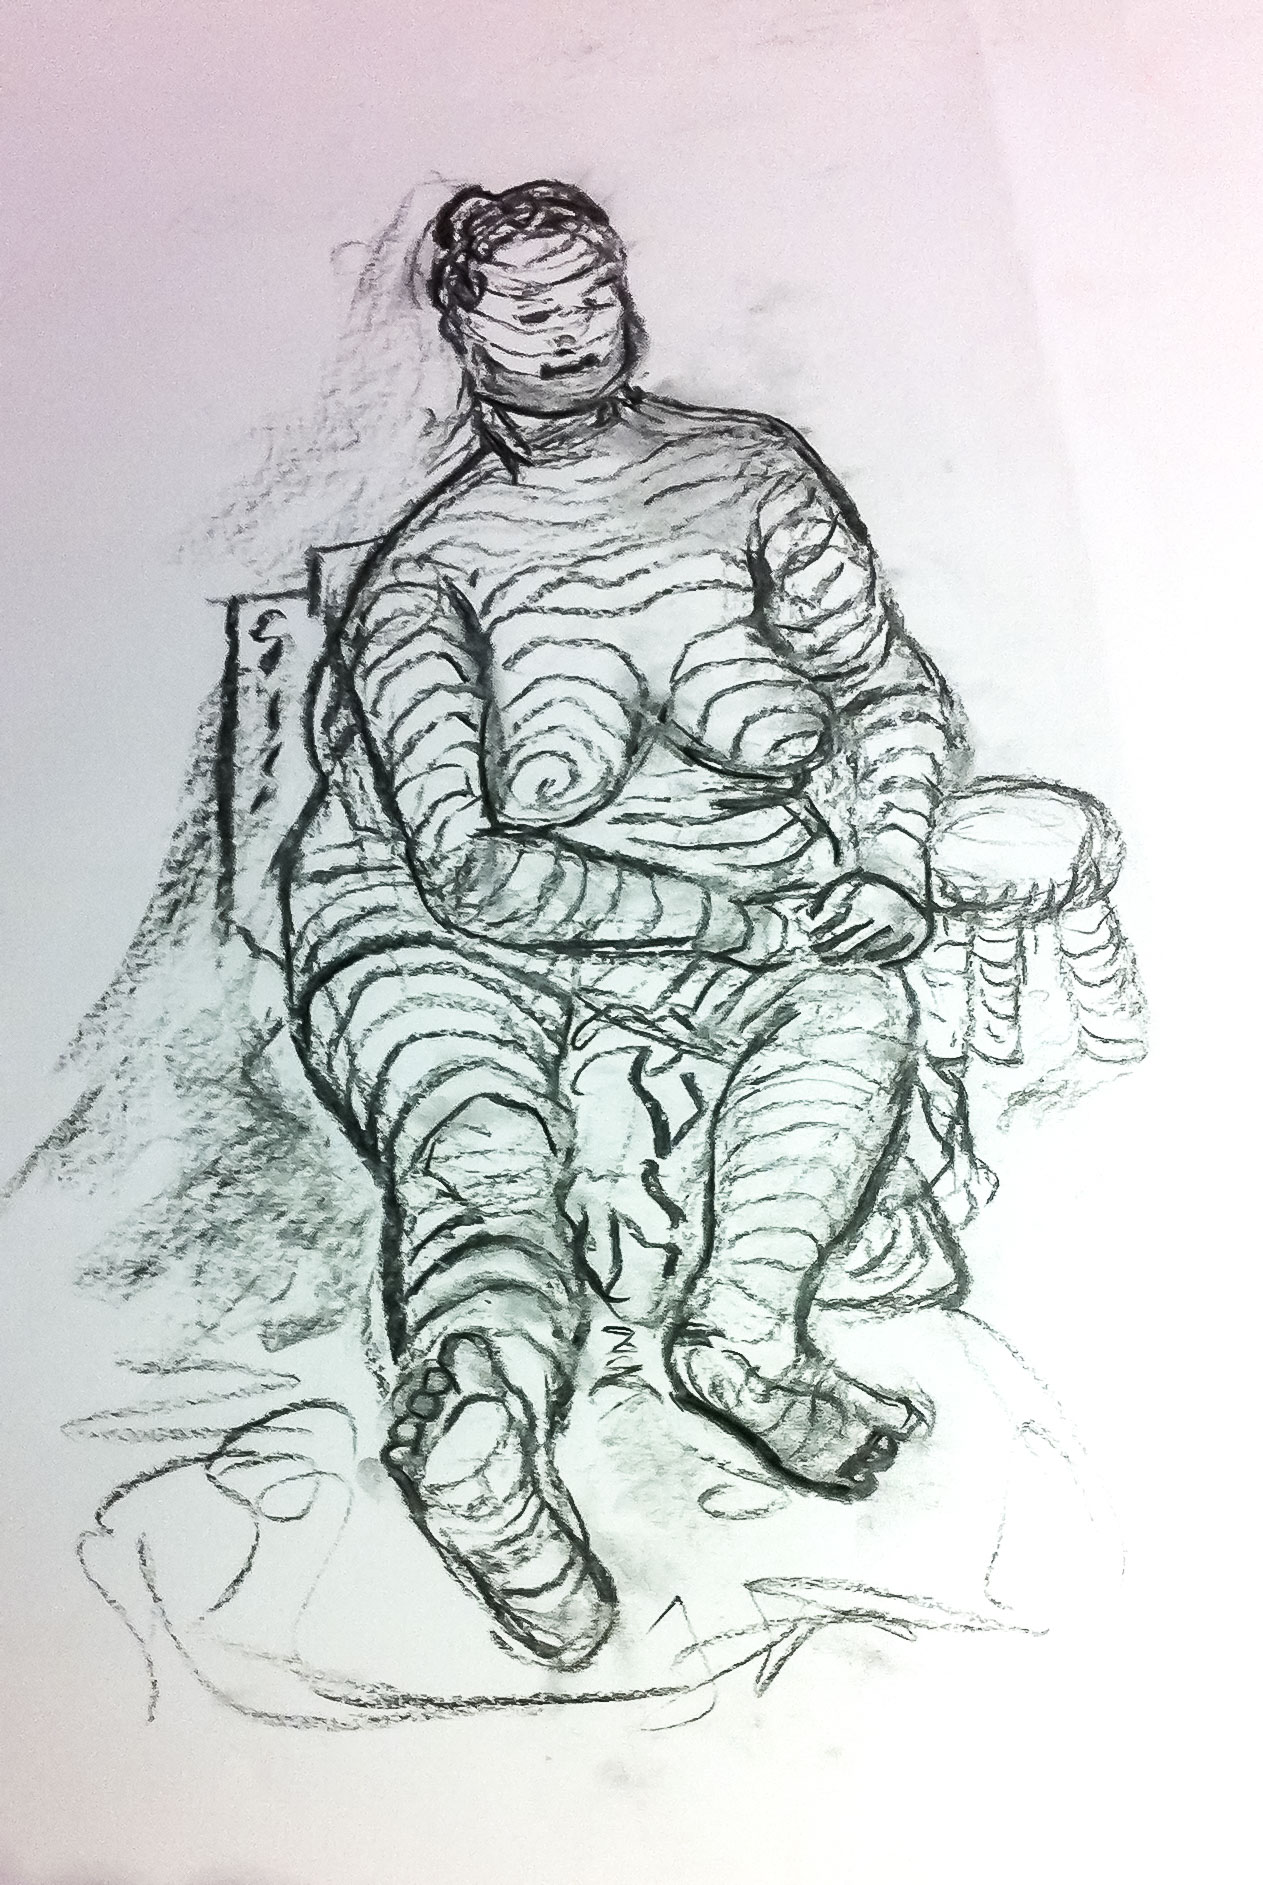 Margo Chinneck, Lifedrawing exploring contours